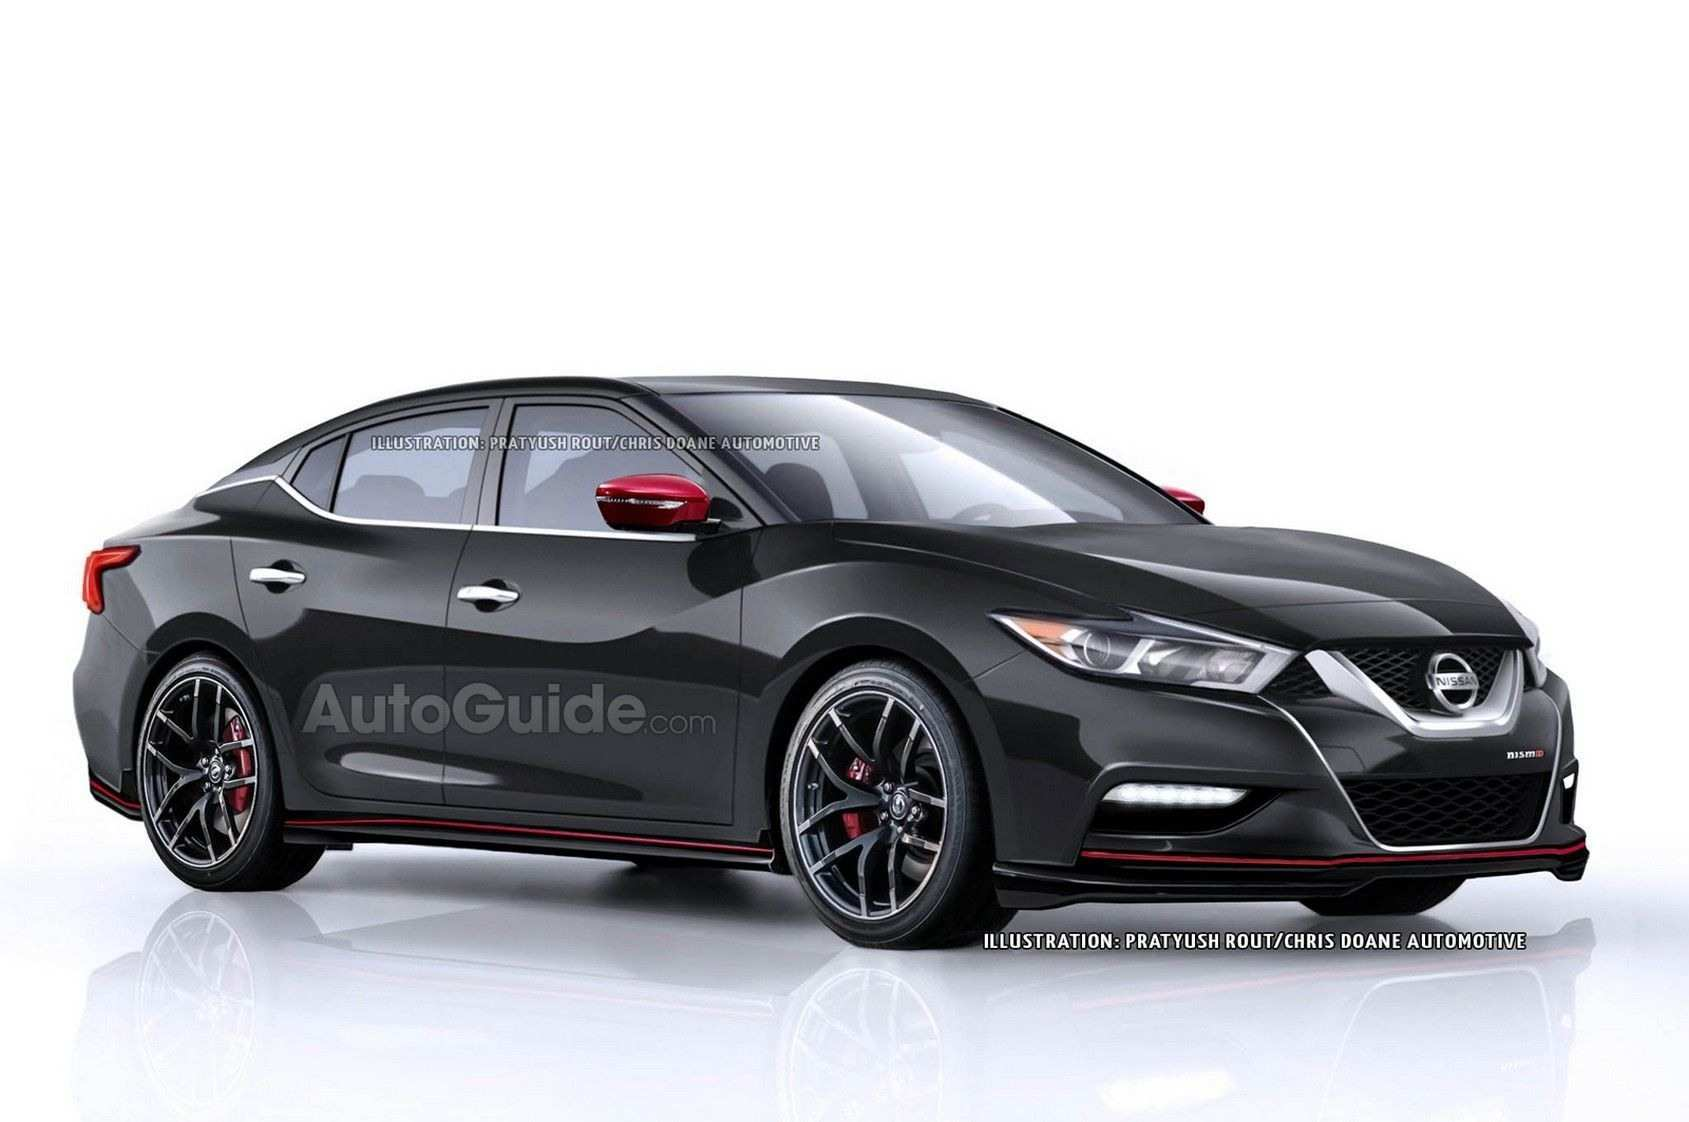 76 The Nissan Maxima 2020 Awd Release Date And Concept